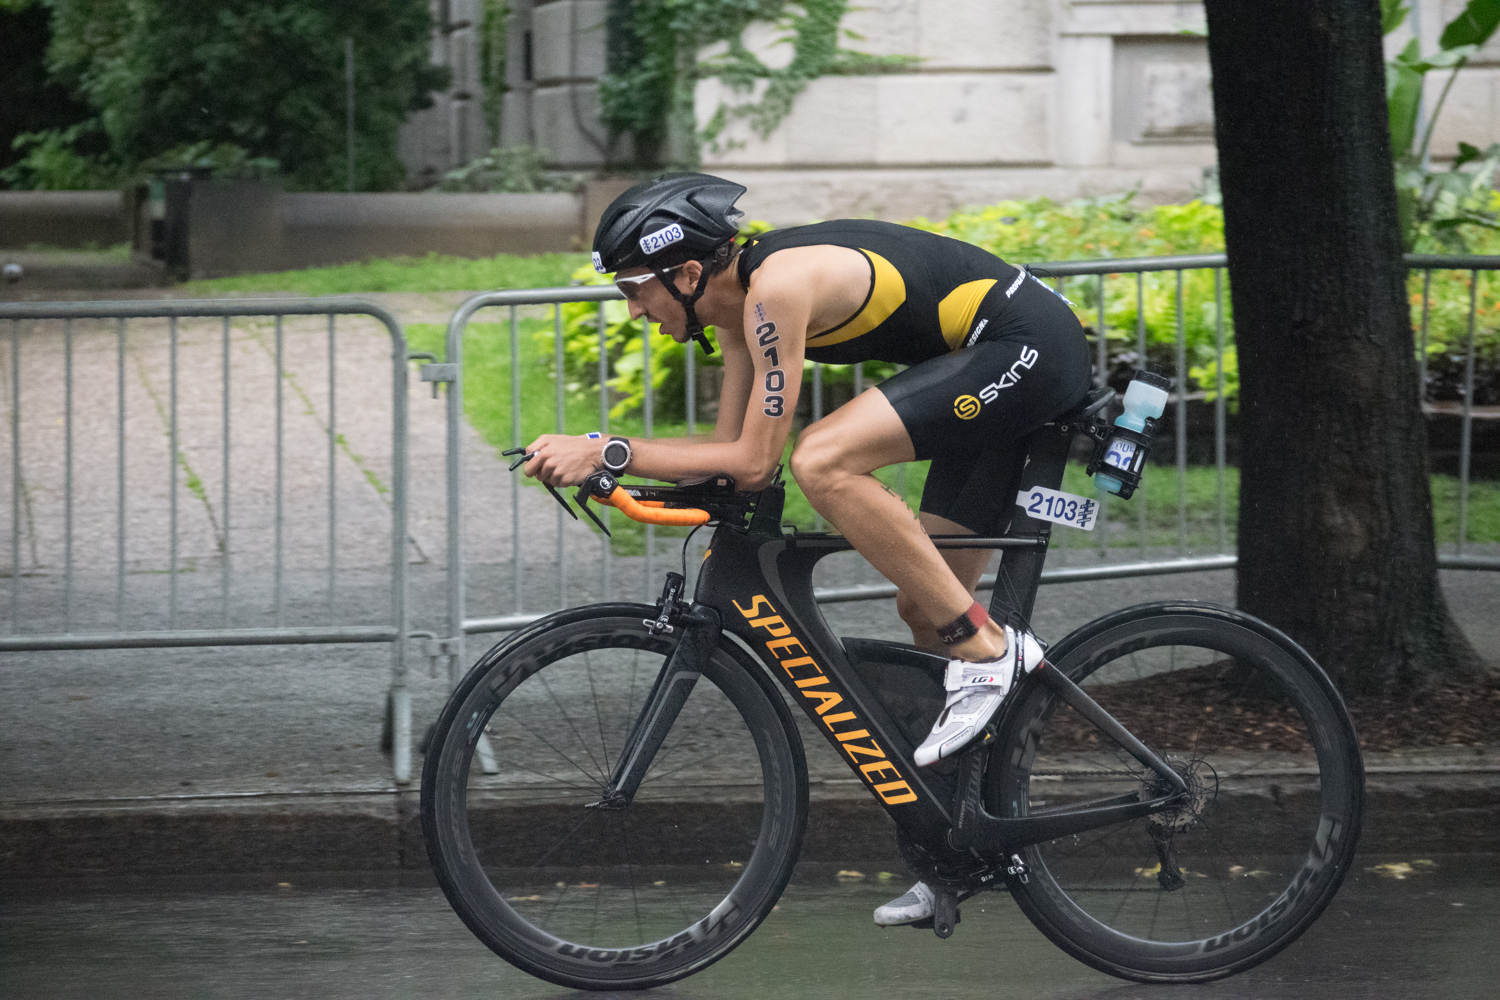 le triathlon c'est plus qu'un swim bike run